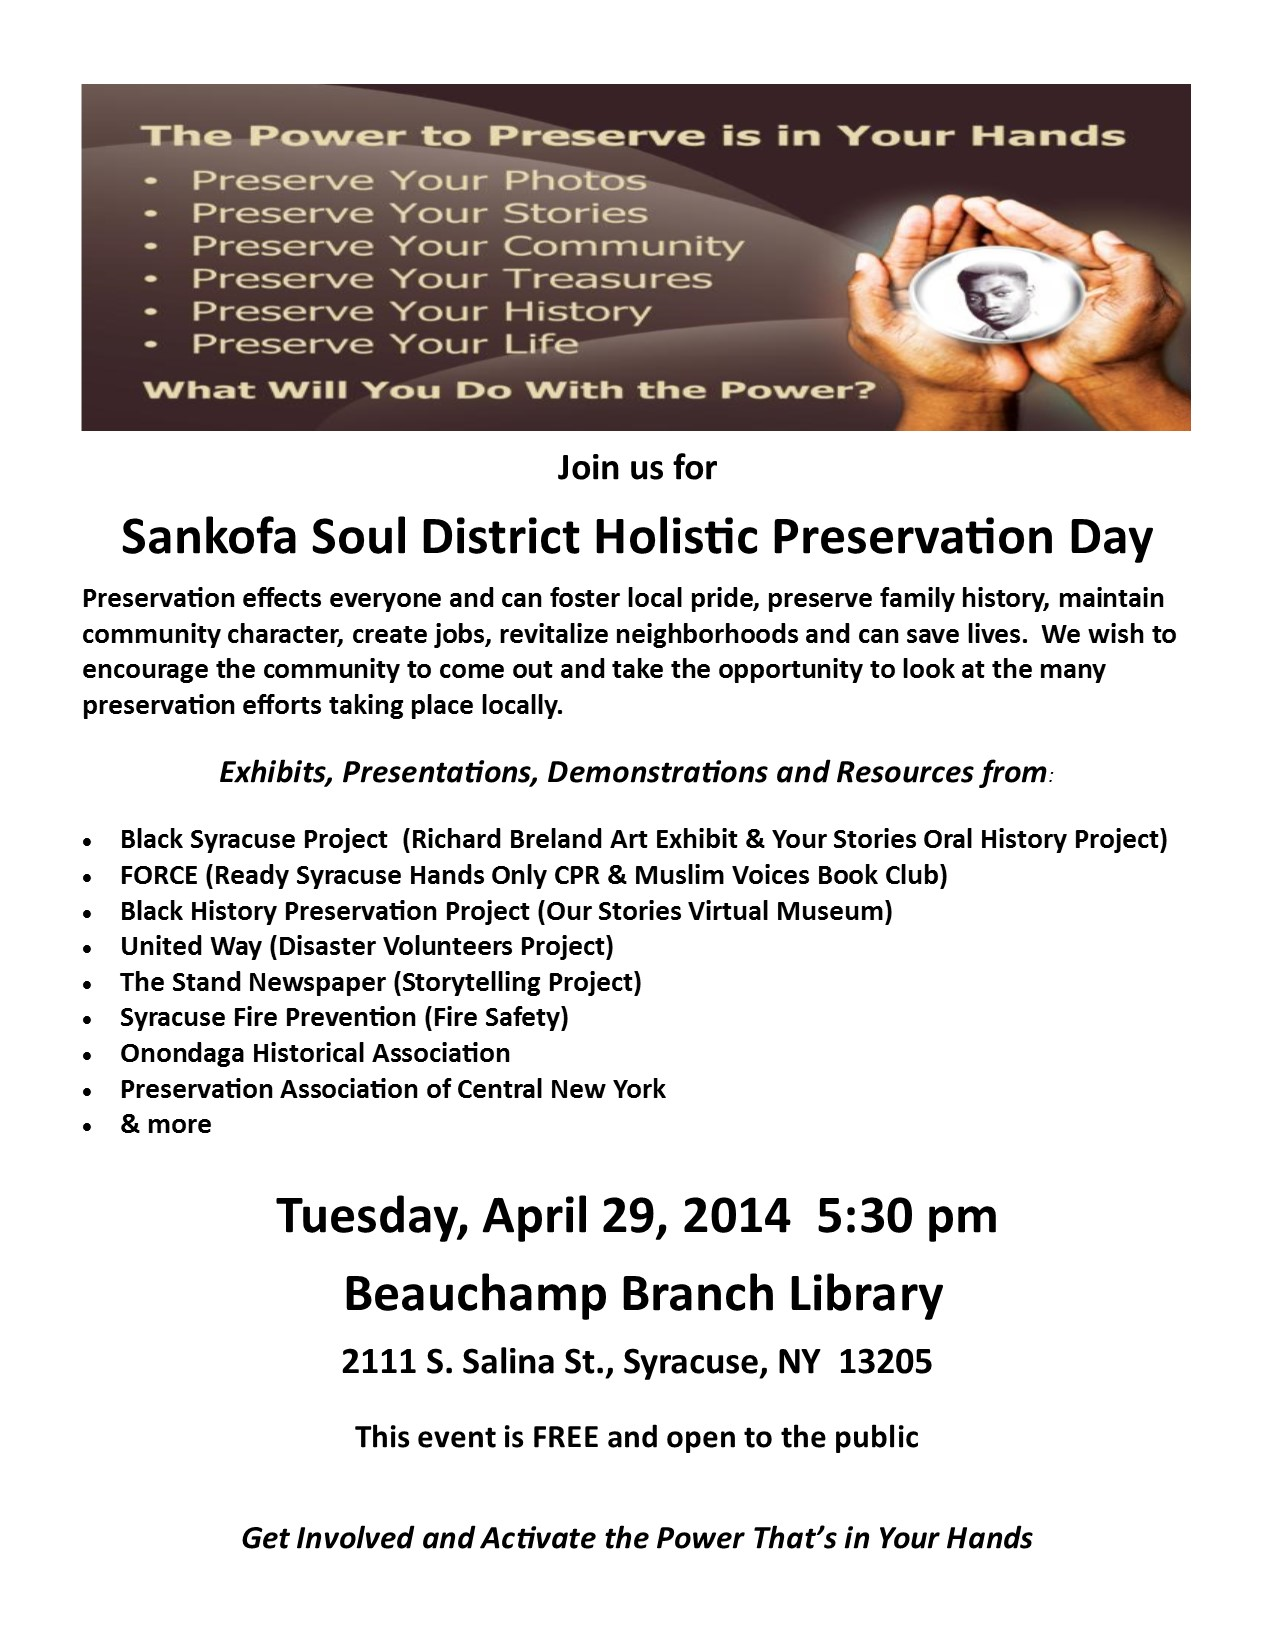 Sankofa Soul District Holistic Preservation Day Flier